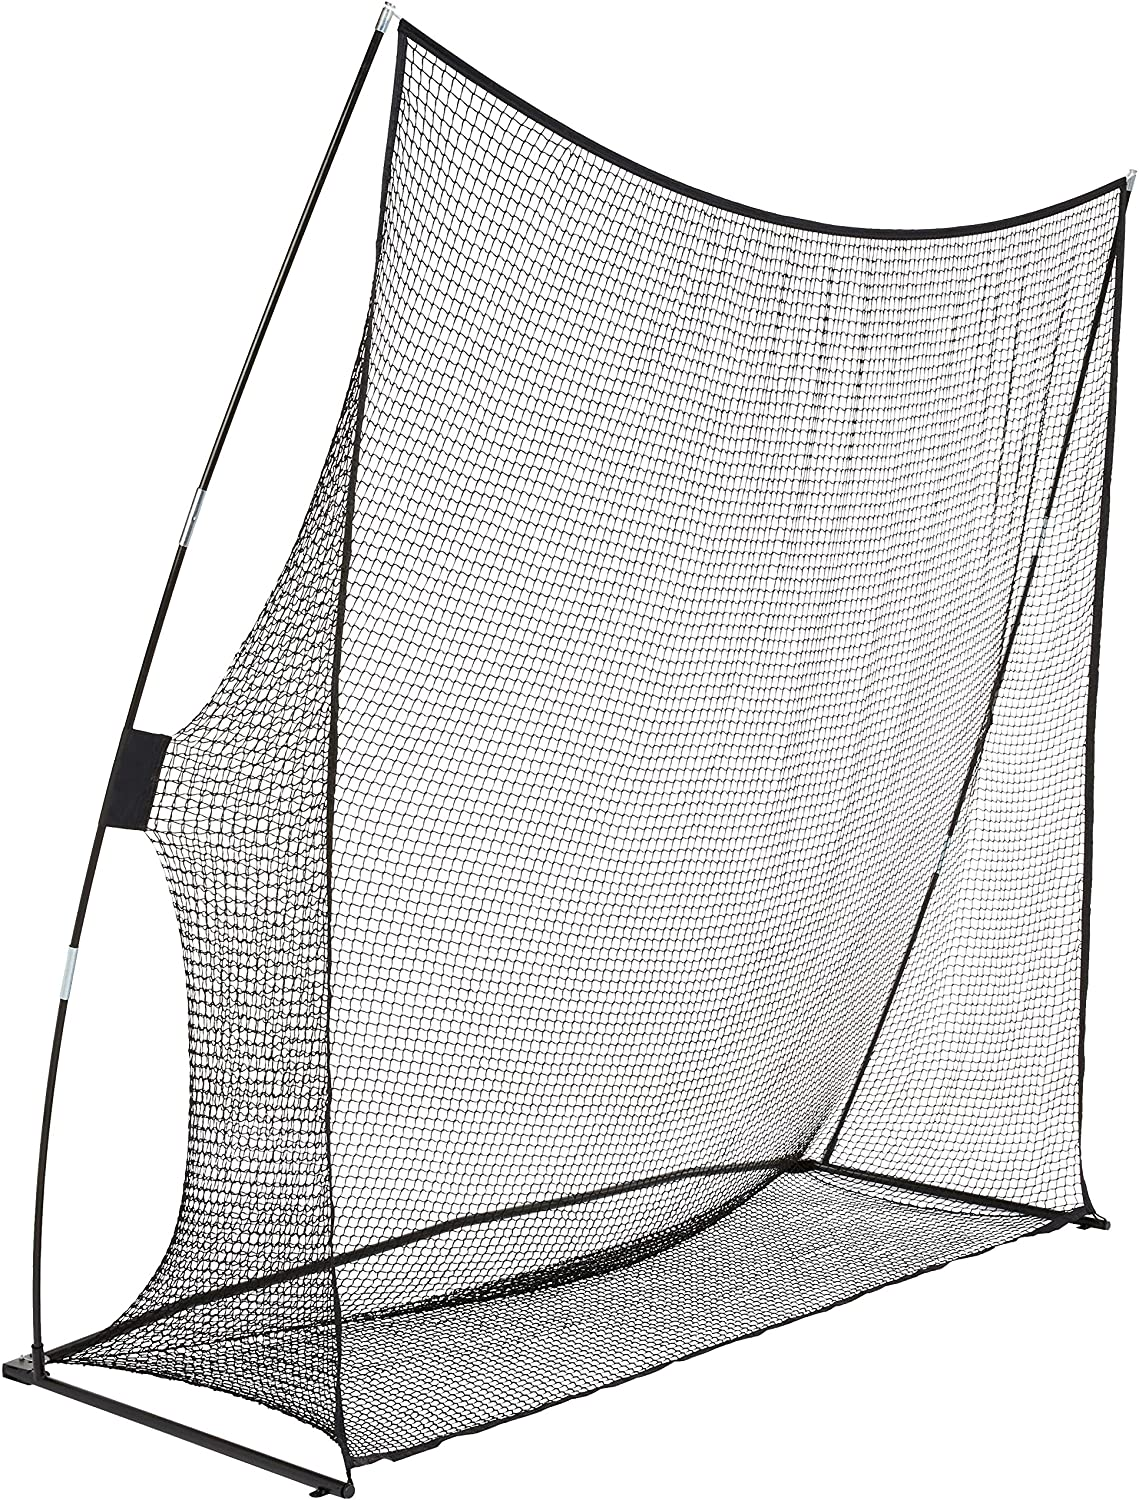 Basics Portable Driving Practice Golf Net, 8-Foot x 8-Foot : Sports & Outdoors